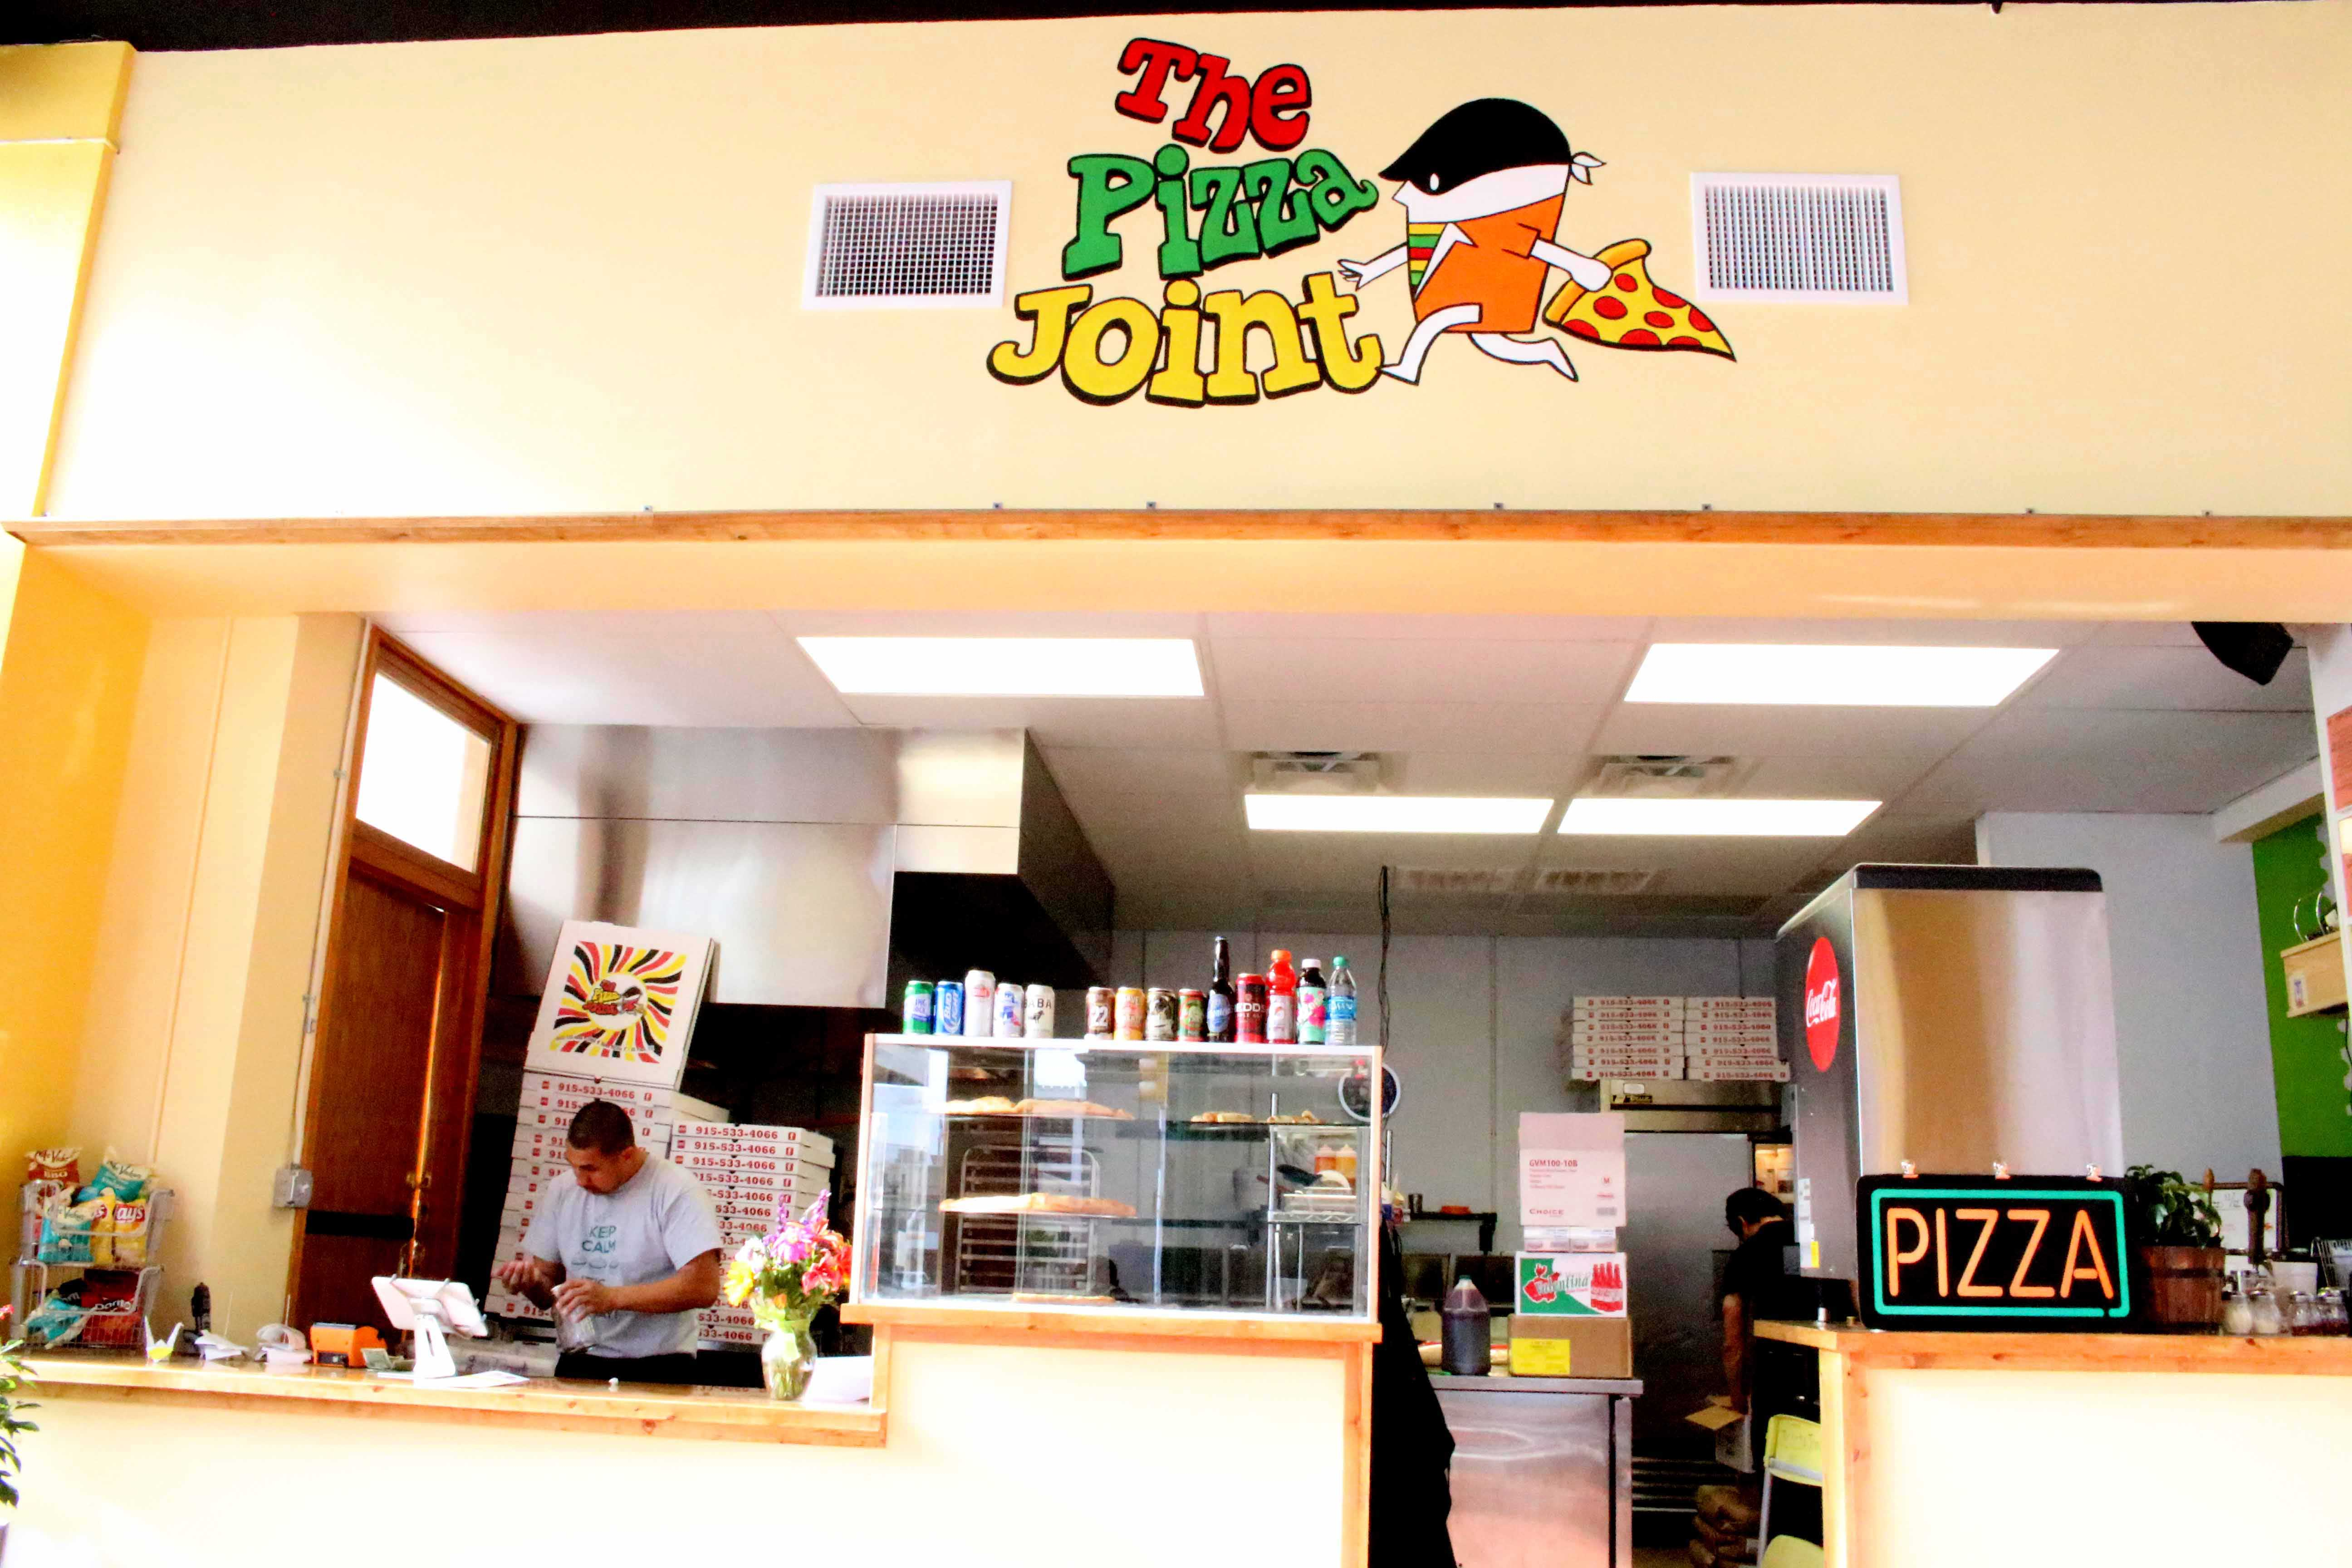 The second The Pizza Joint opens its second location at the corner of 500 N. Stanton and Franklin Ave.